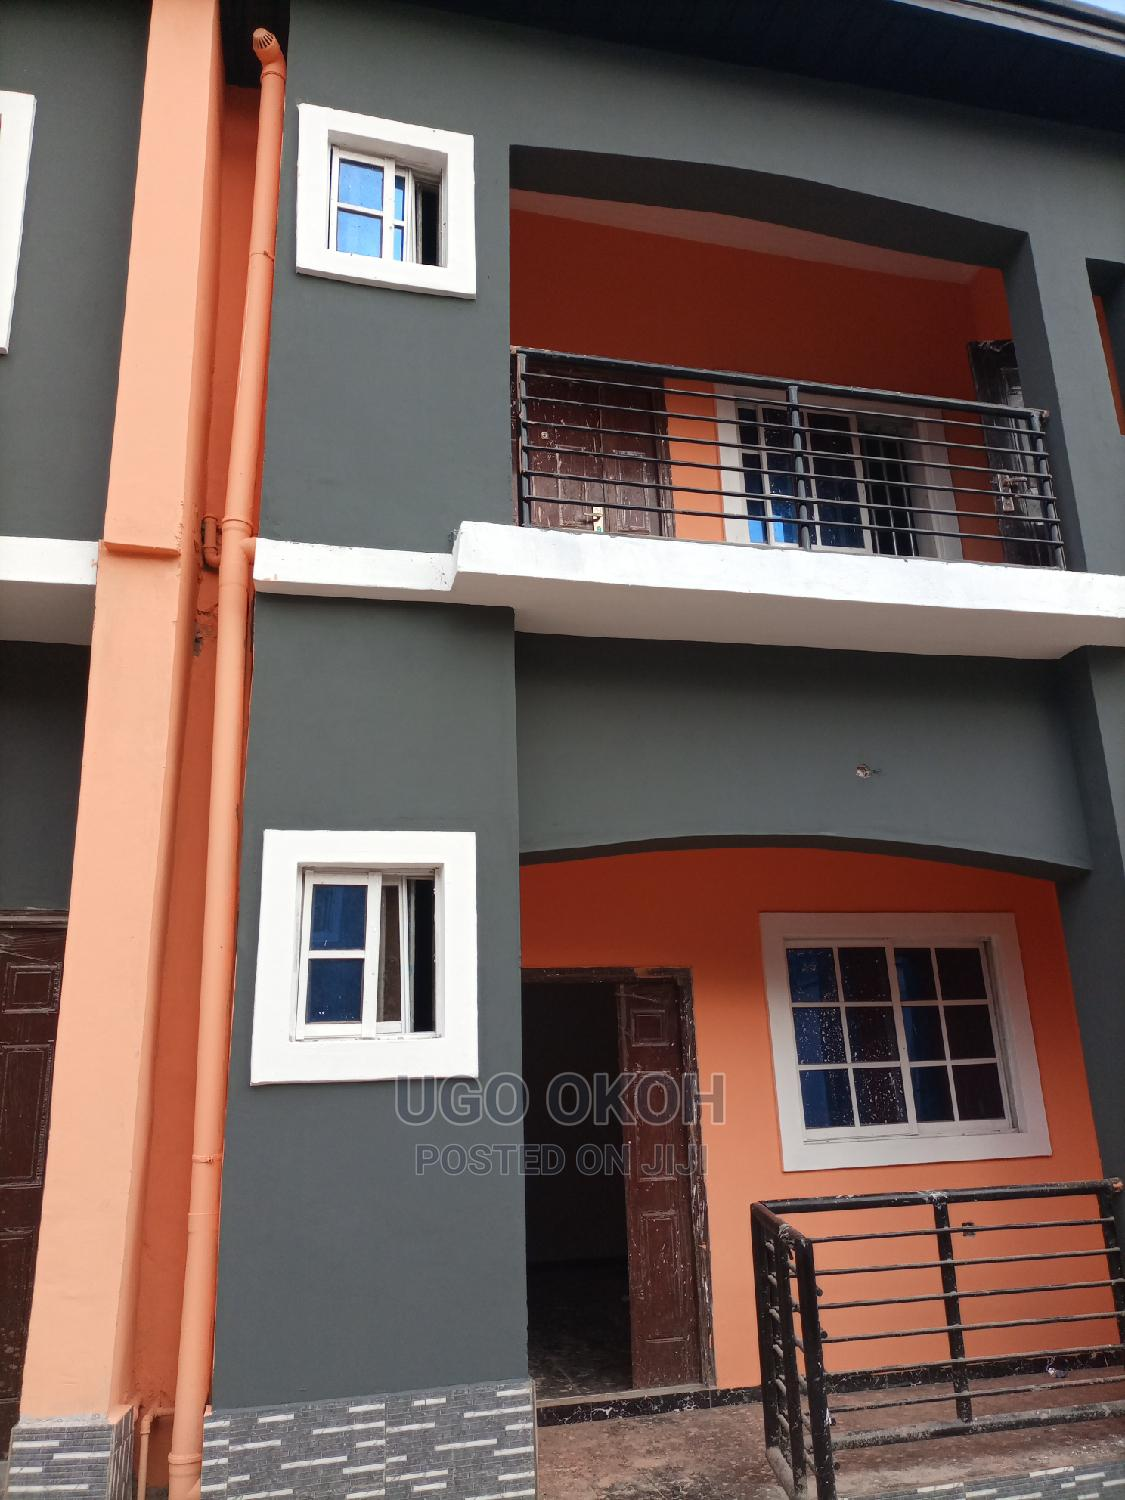 2 Bedroom Apartment For Rent | Houses & Apartments For Rent for sale in Oshimili South, Delta State, Nigeria